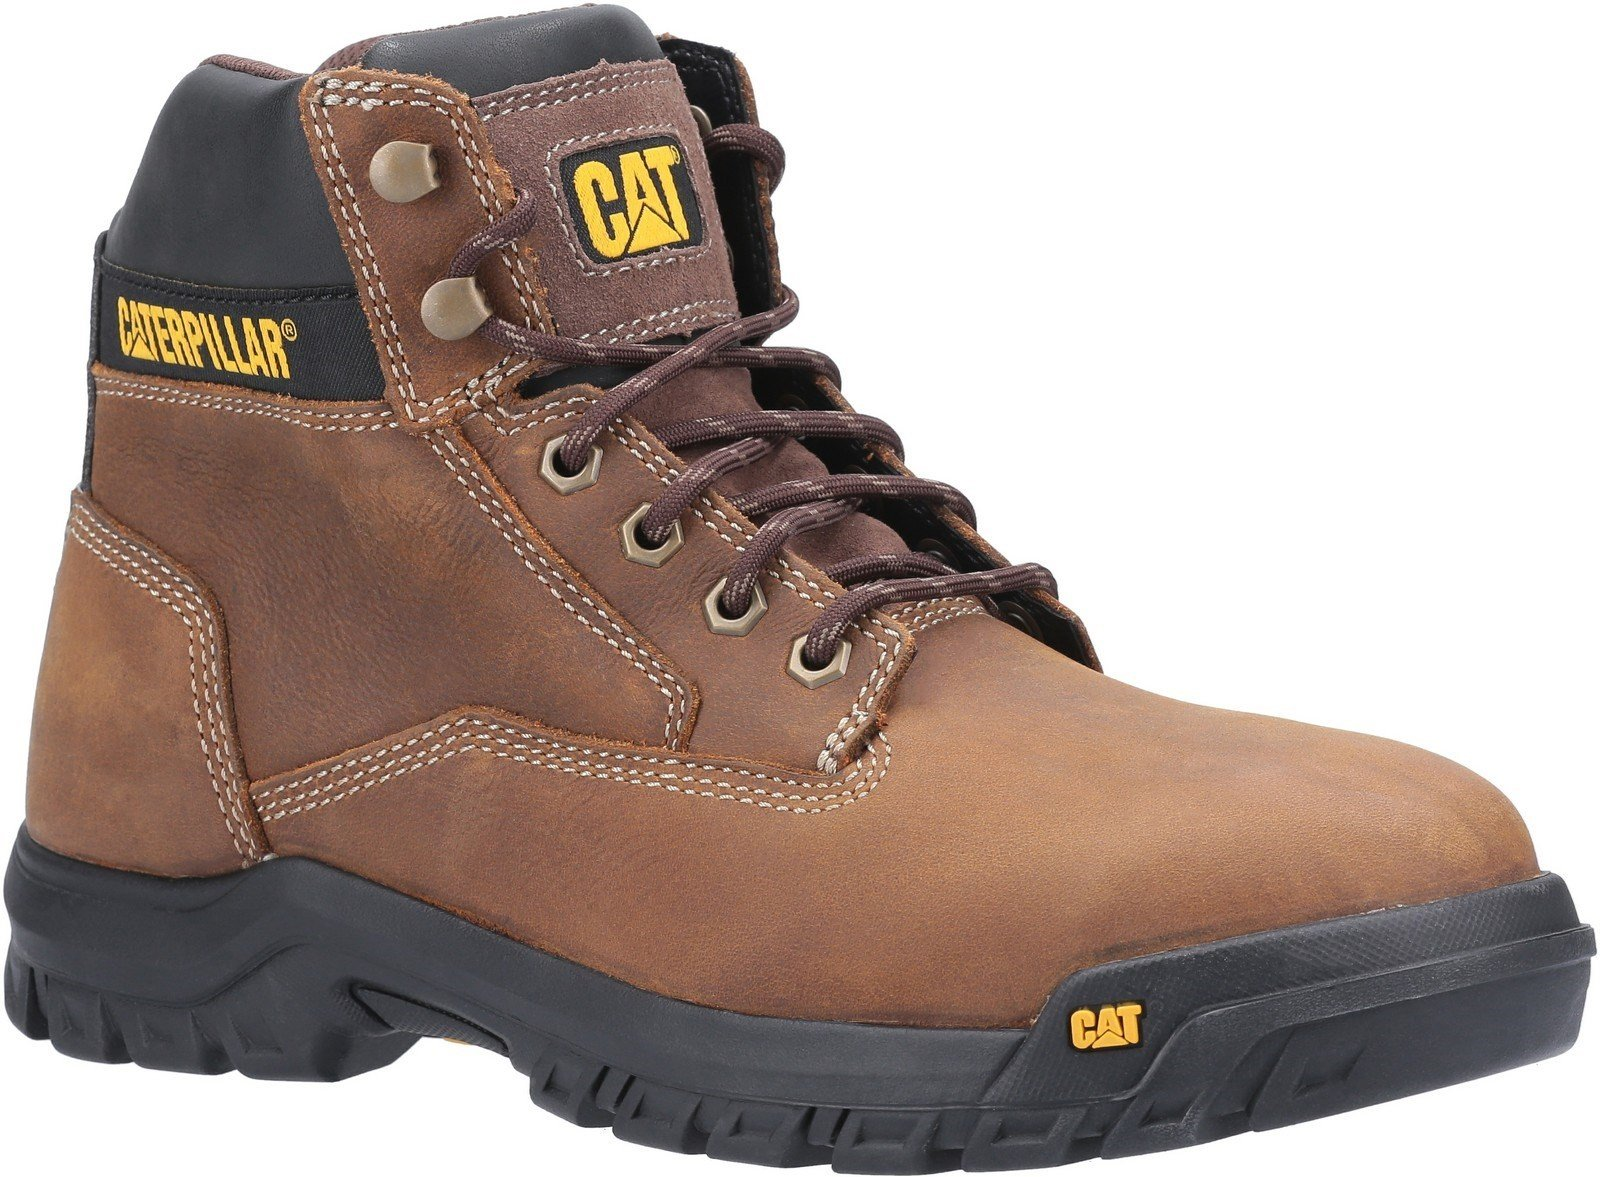 Caterpillar Men's Median S3 Lace Up Safety Boot Brown 30432 - Brown 6